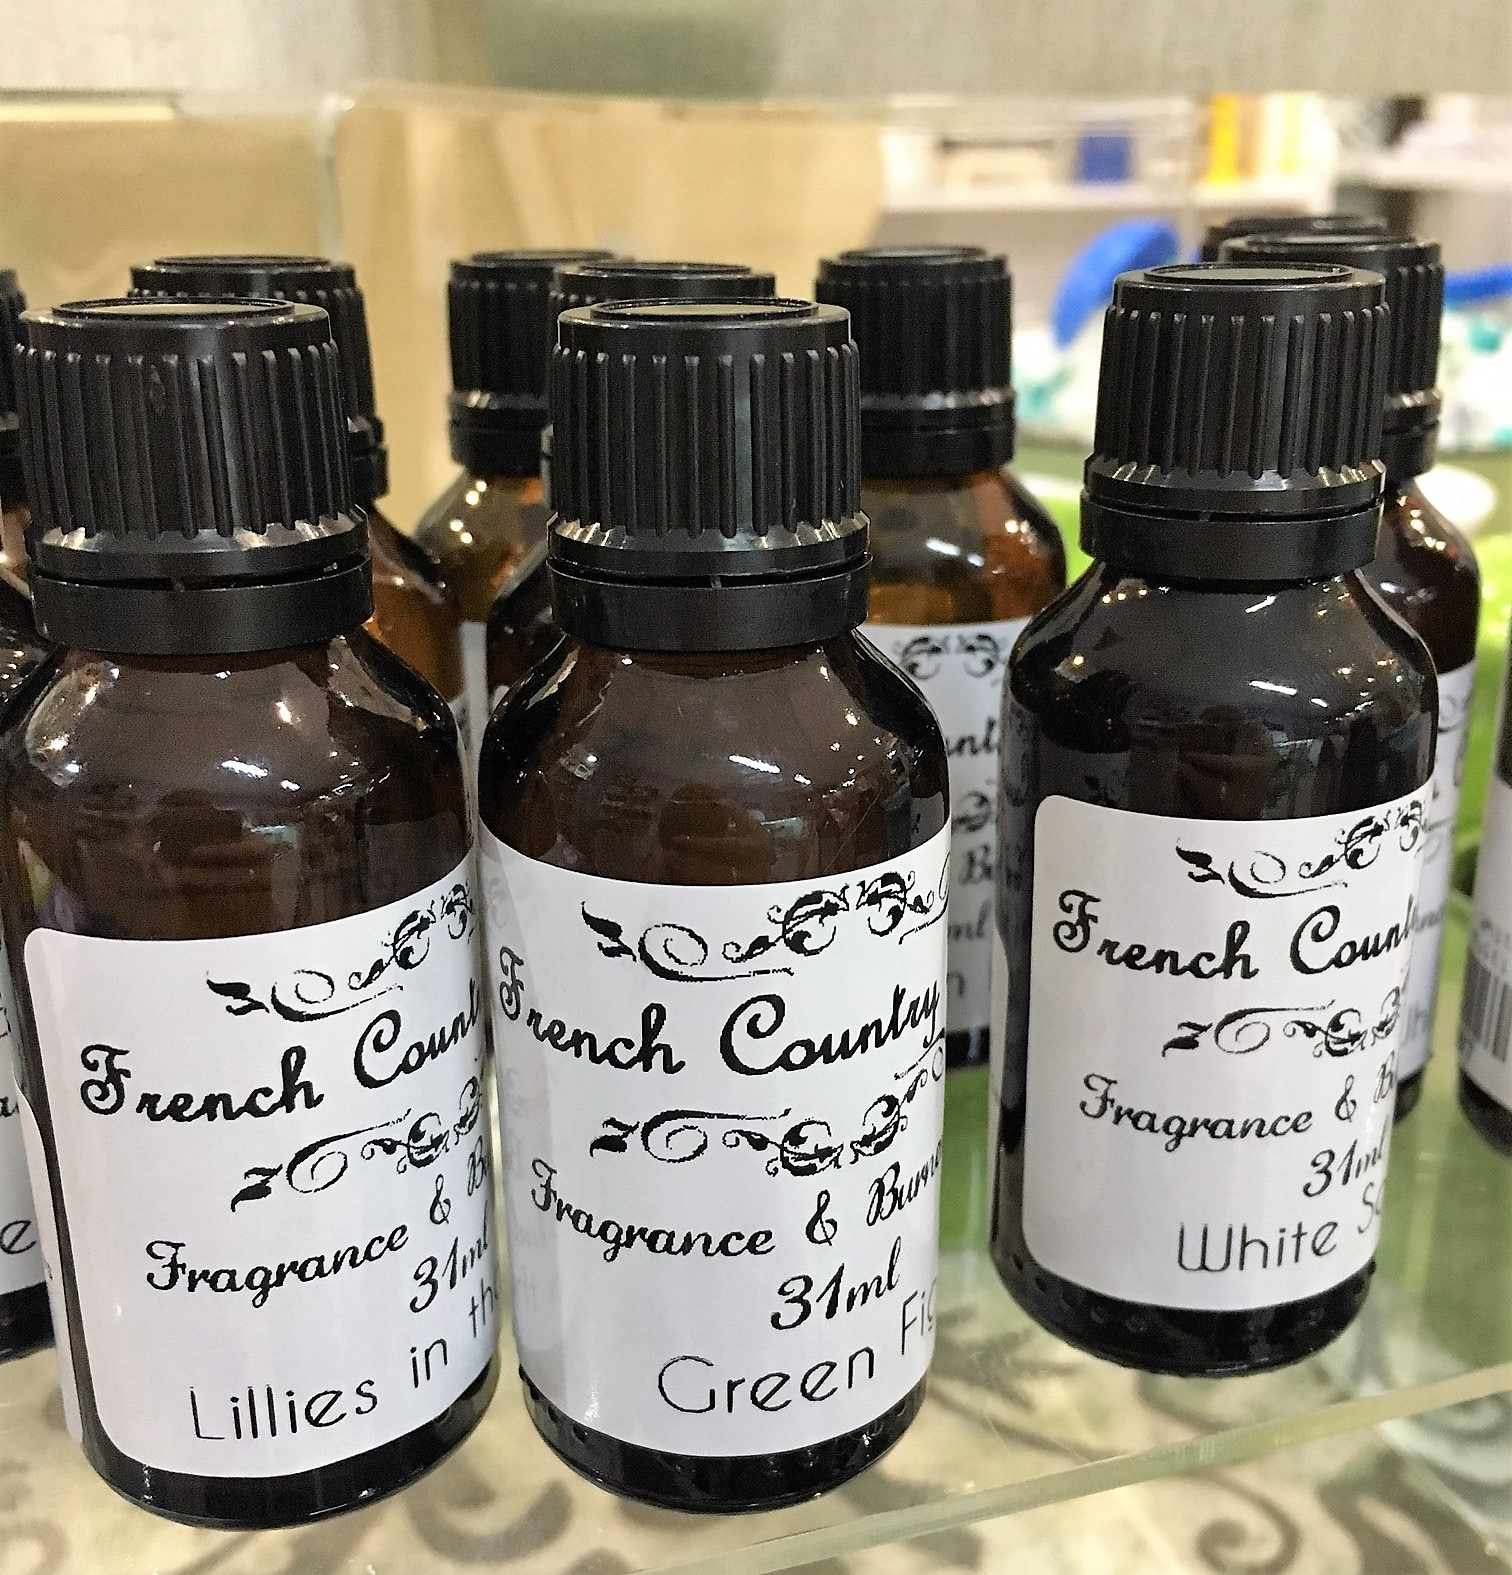 Burner Oil - Our popular burner oils come in both the 11ml and 31ml sizes. Use these in a burner with a tea candle to get a strong aroma through your home. Available in White Sand, Lillies in the Mist & Green Fig scents.